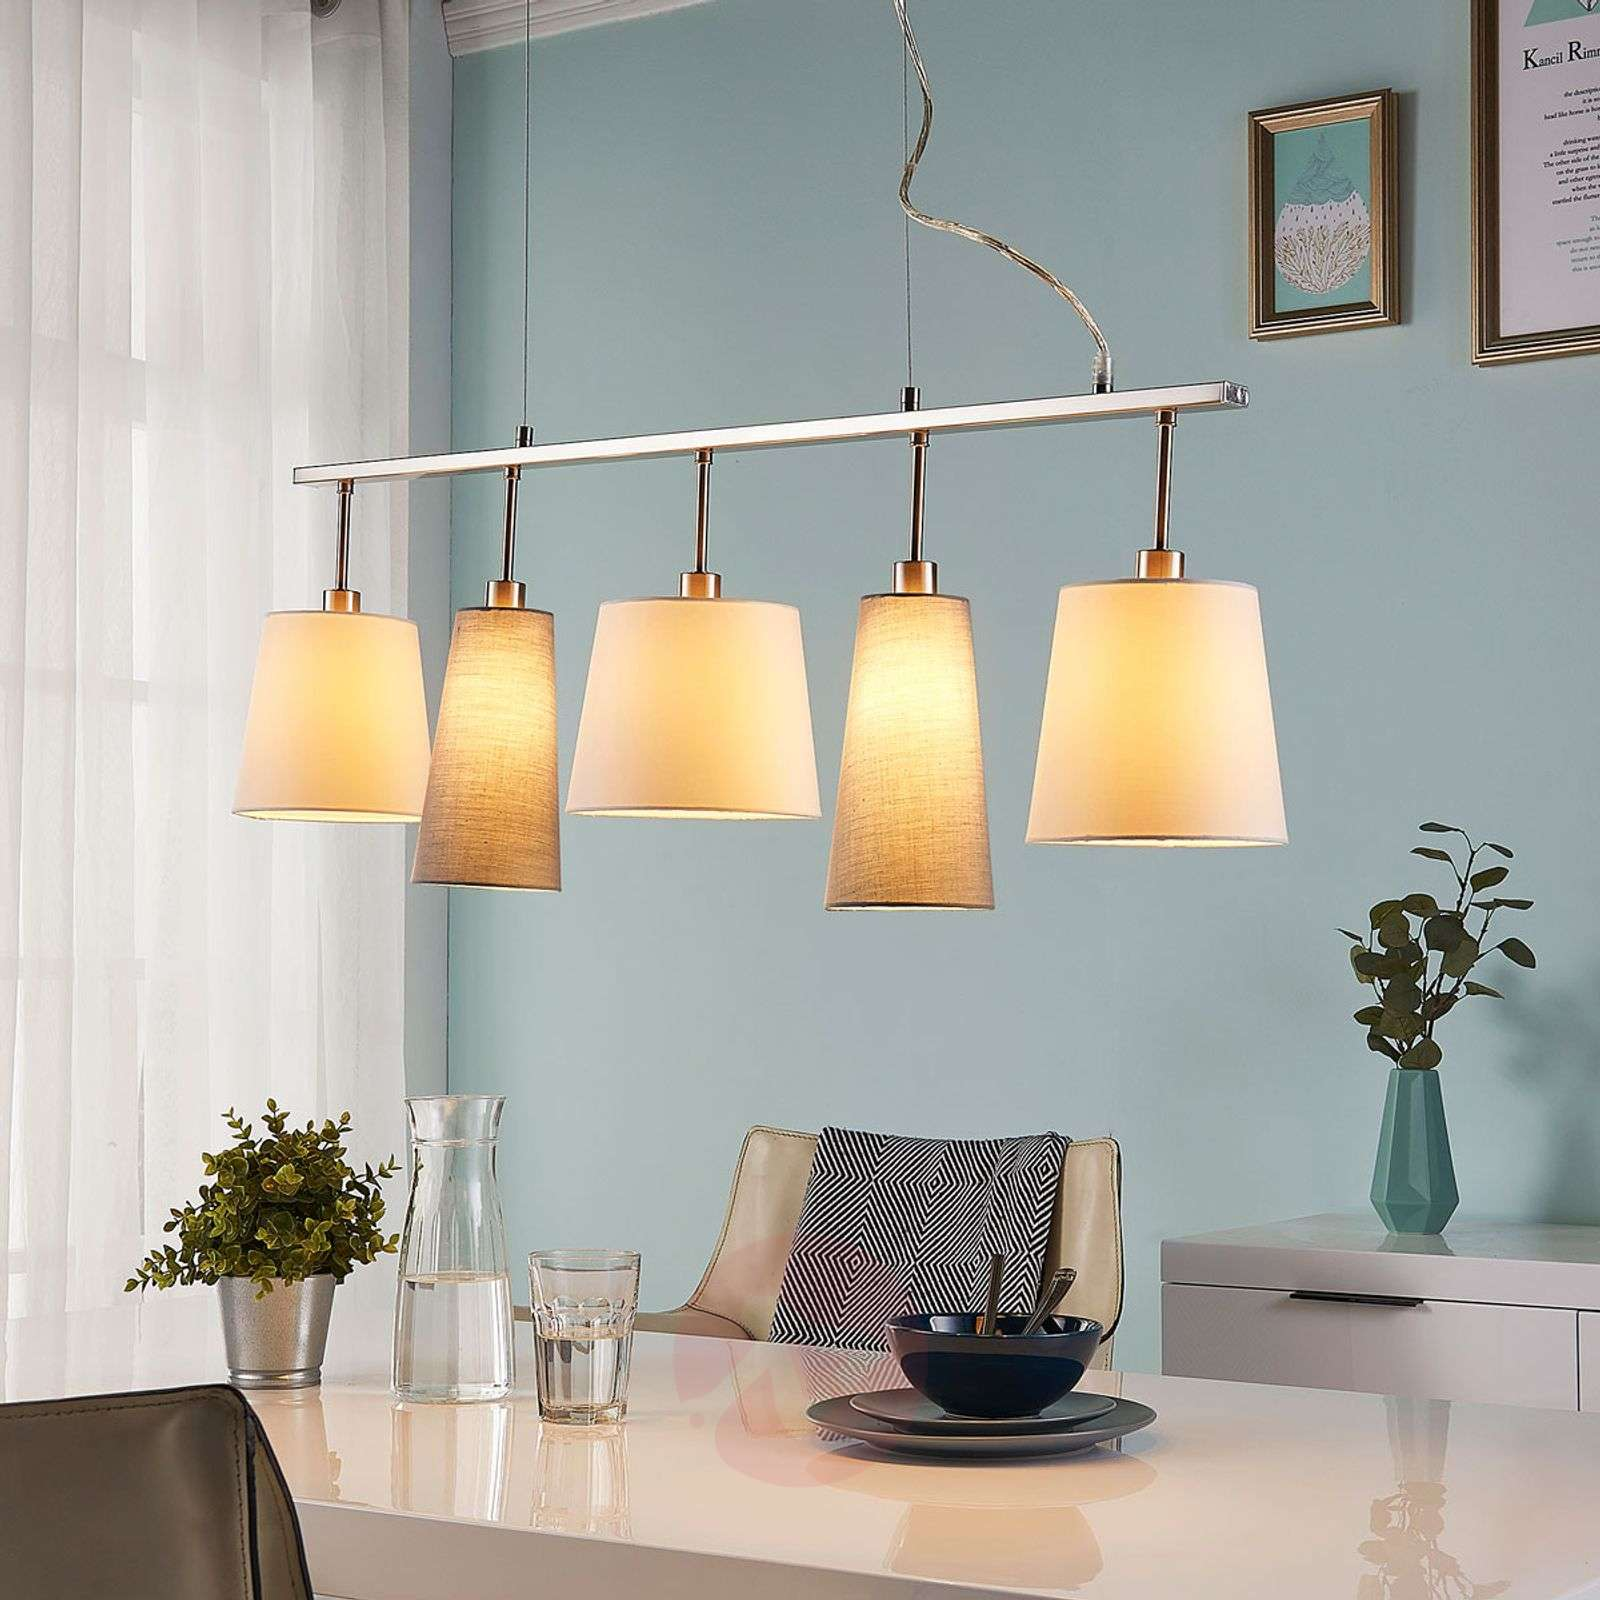 Beautiful Hanglamp Eetkamer Ideas - Raicesrusticas.com ...